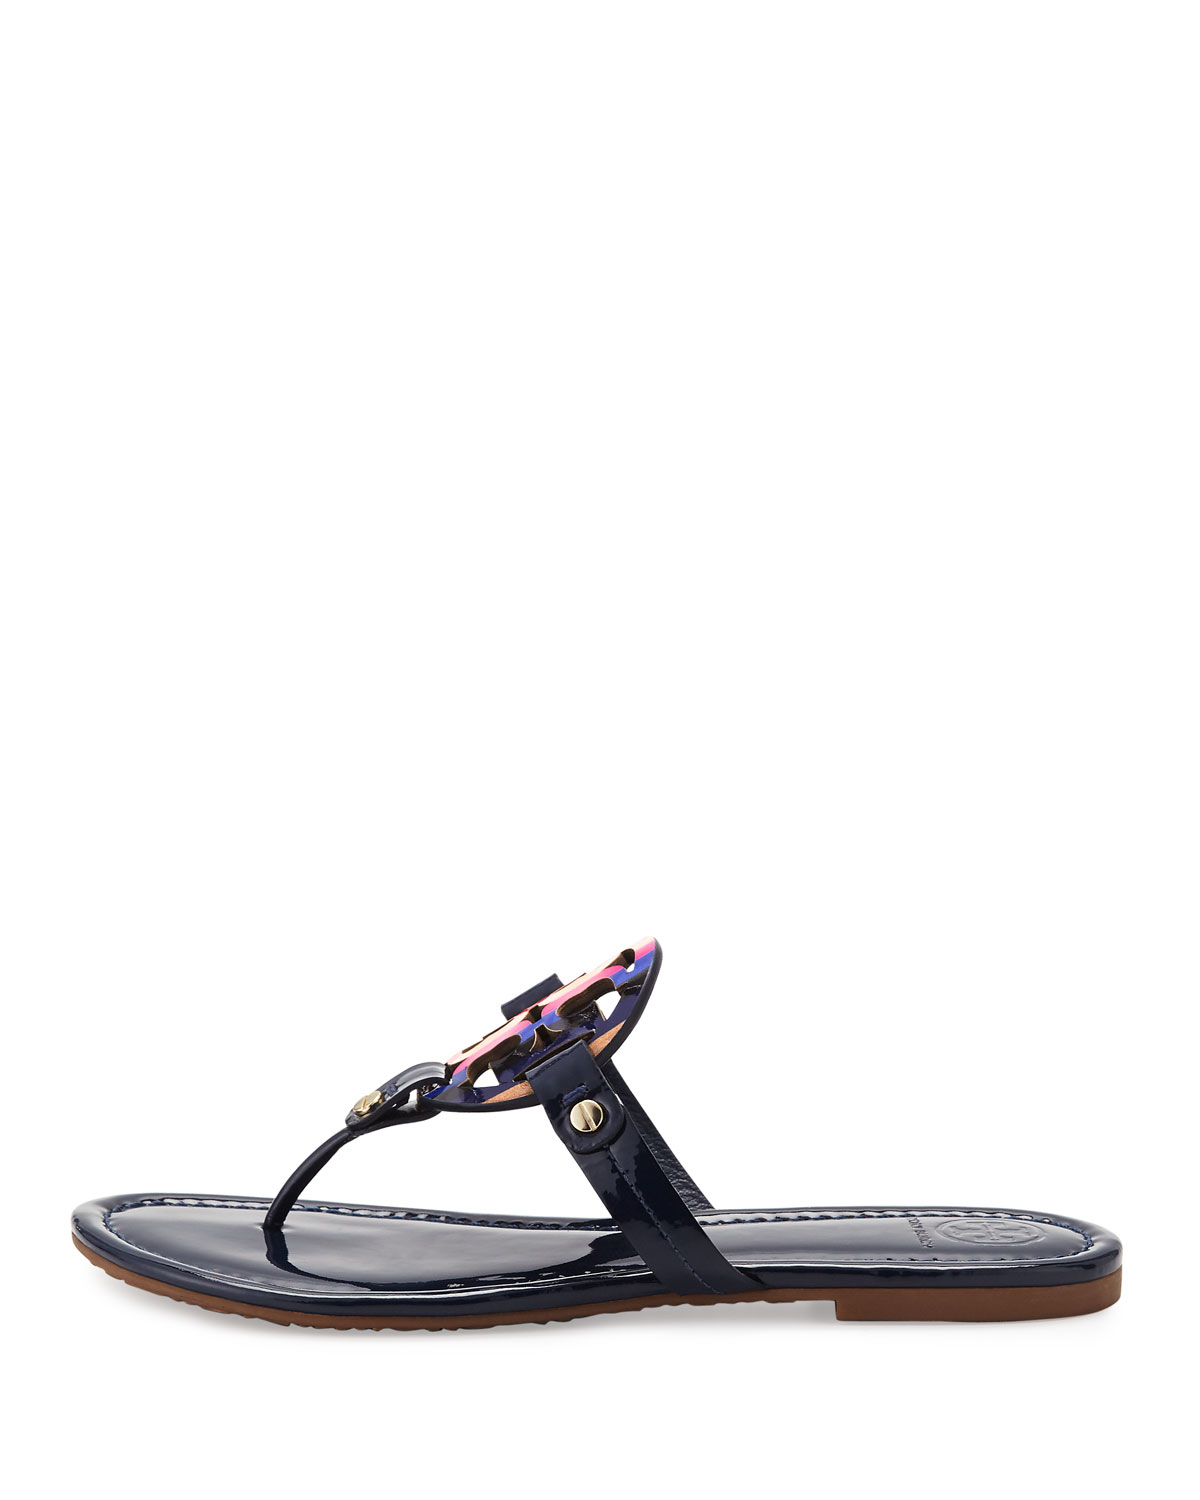 fed9ebe32eb4 Lyst - Tory Burch Miller Rainbow Patent-Leather Logo Sandals in Black